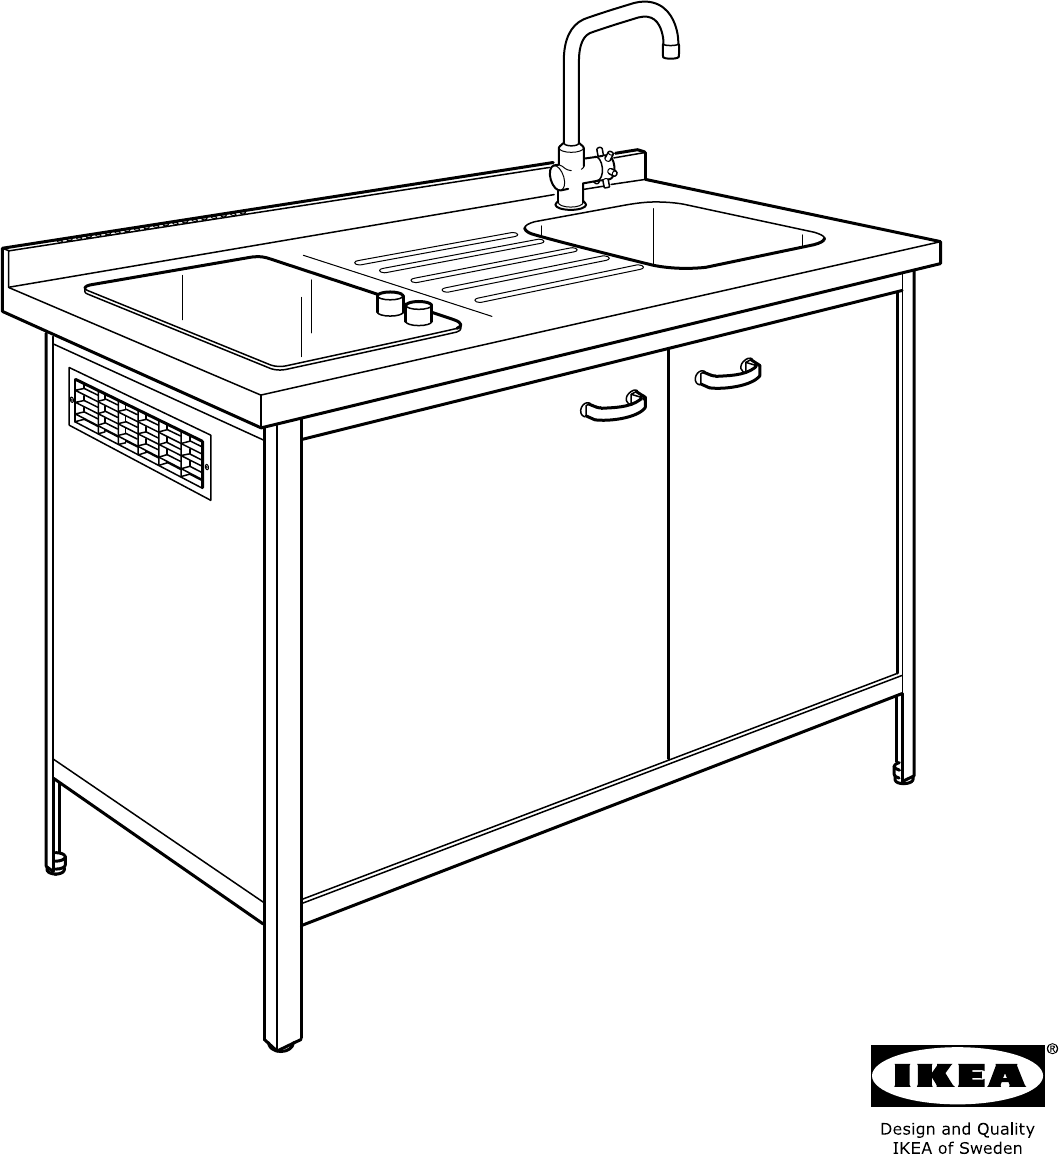 Handleiding ikea attityd kitchenette pagina 1 van 36 dansk deutsch english espan l - Ikea kitchenettes ...